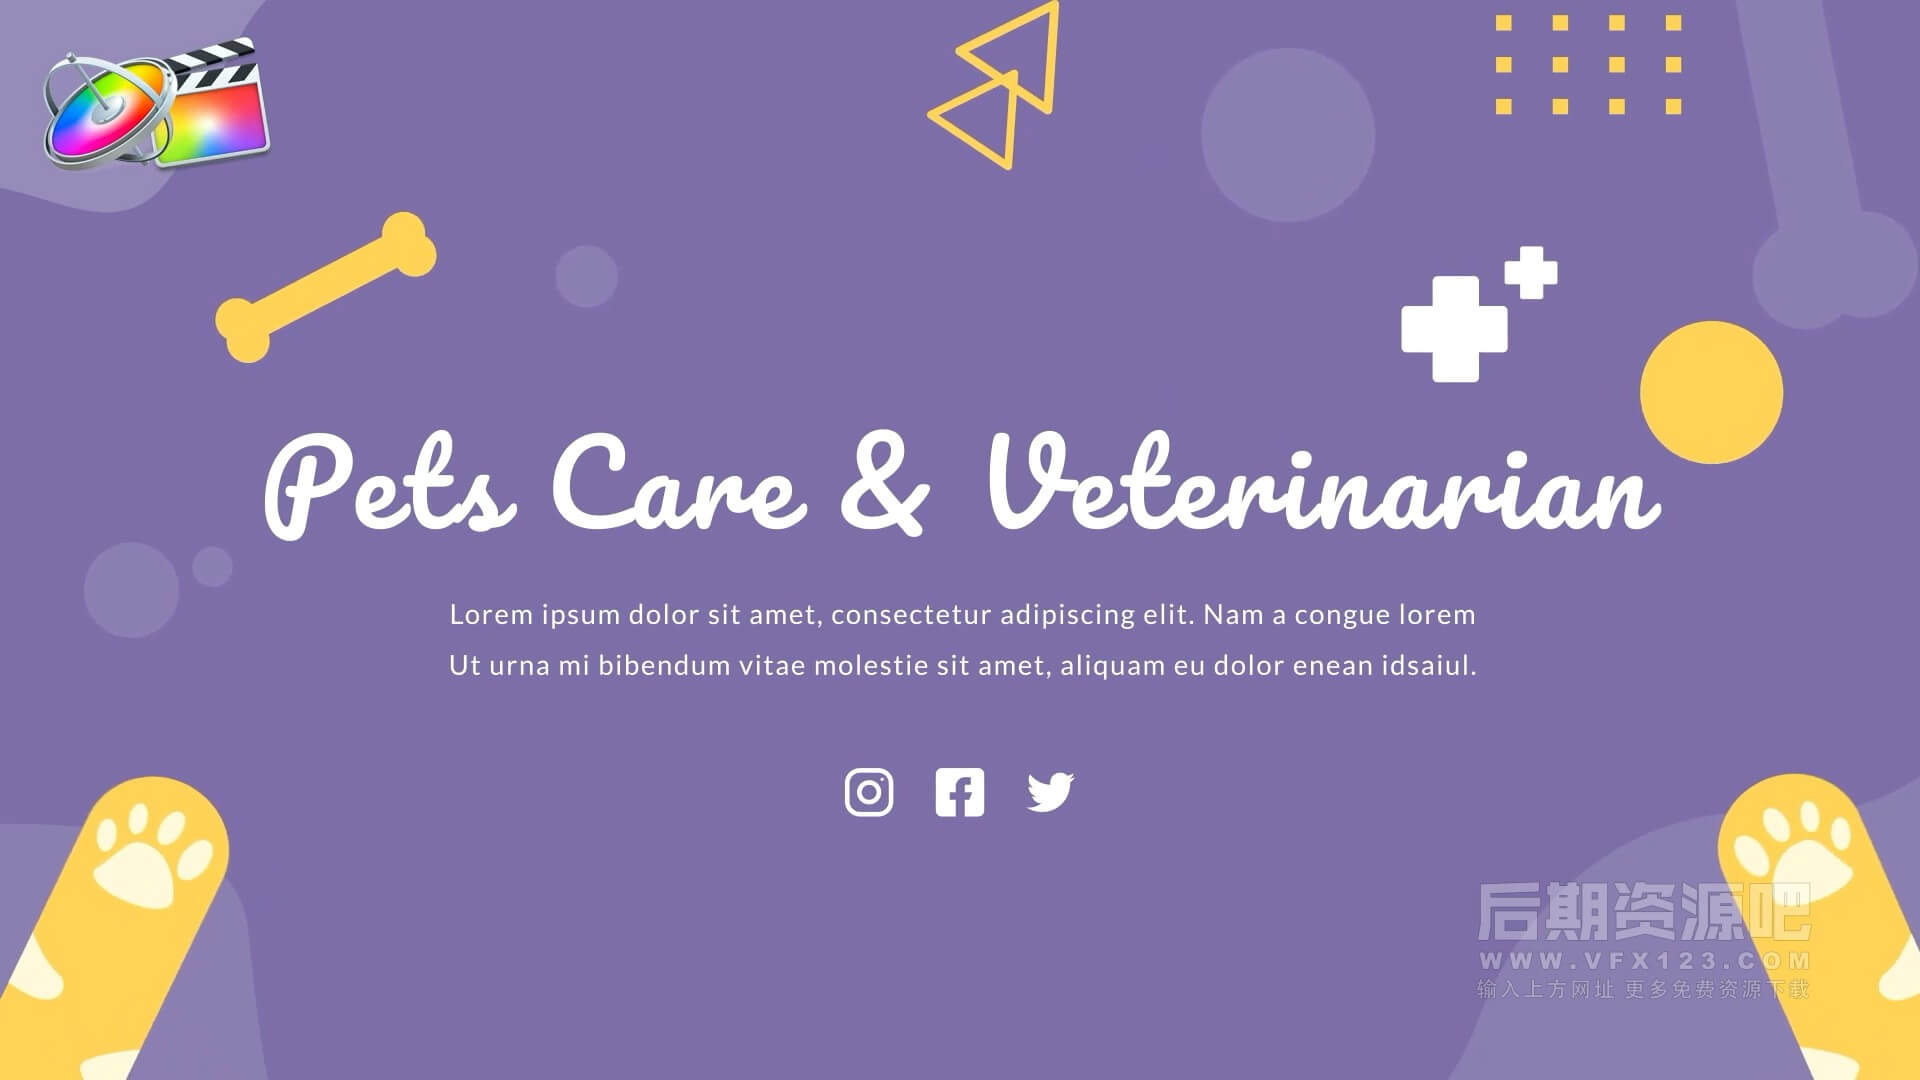 fcpx插件 12组宠物场景卡通动画 可自由组合 Pets Care and Veterinarian